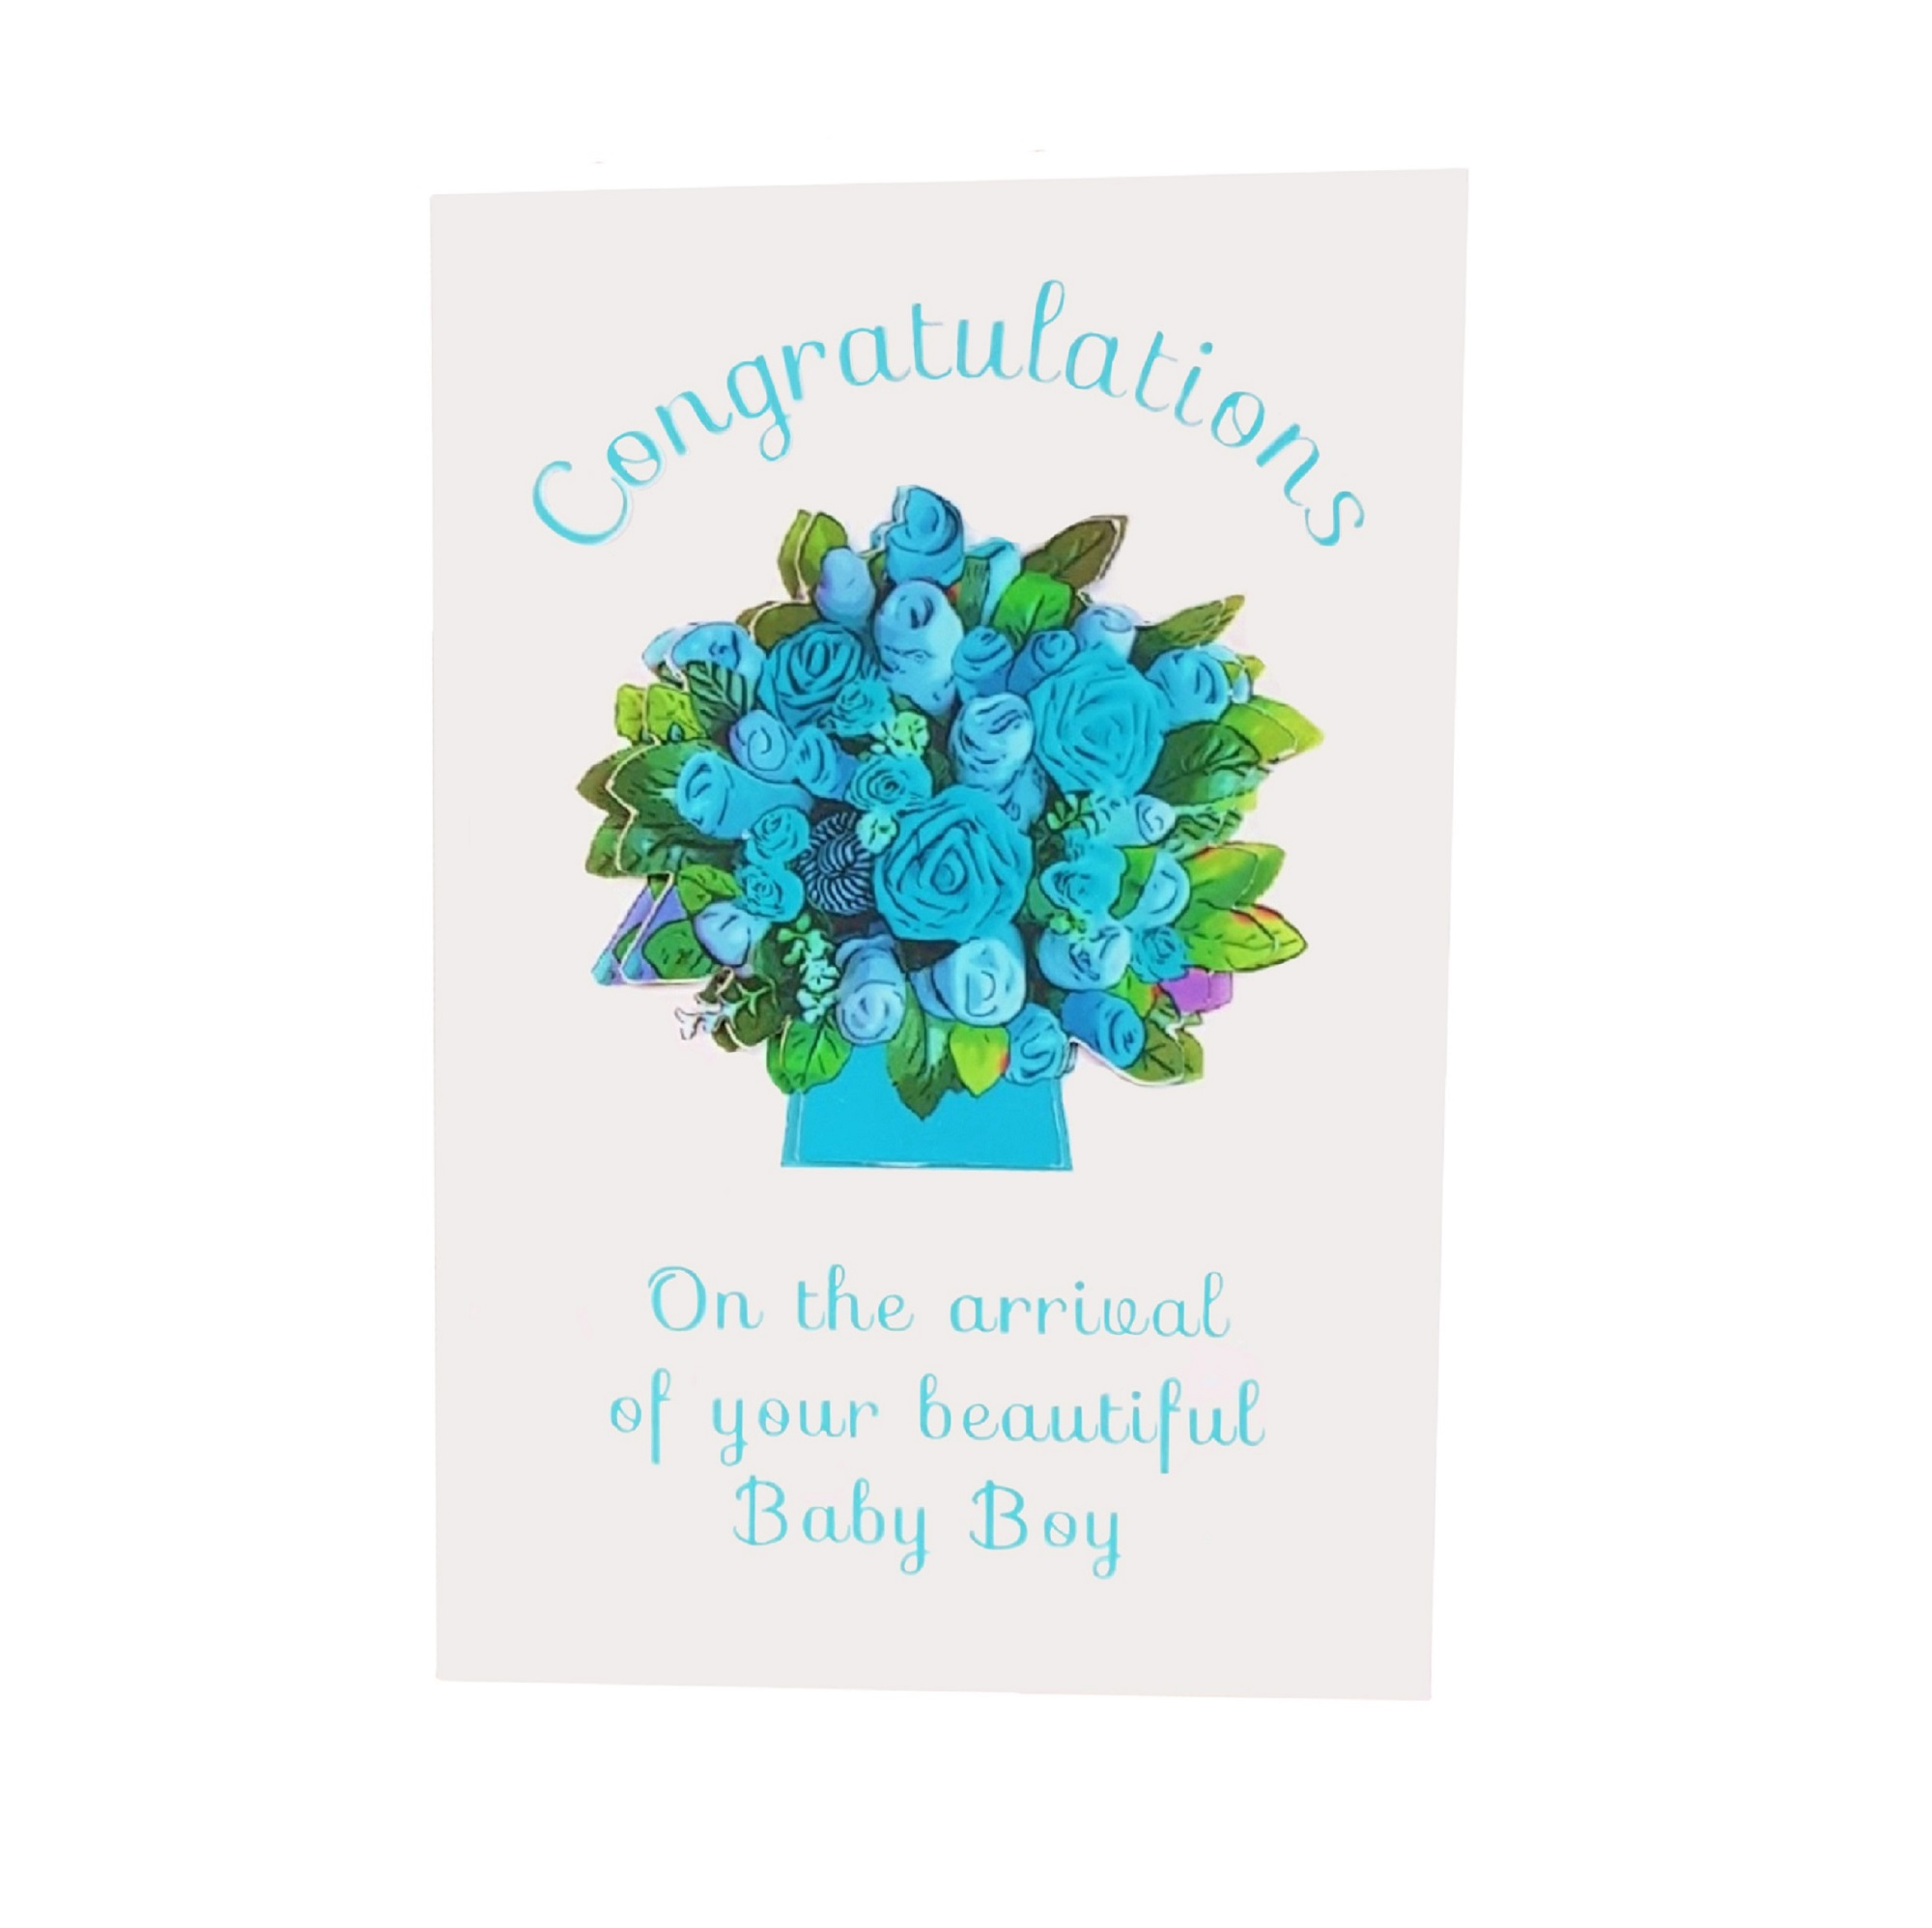 Congratulations - On the arrival of your beautiful Baby Boy